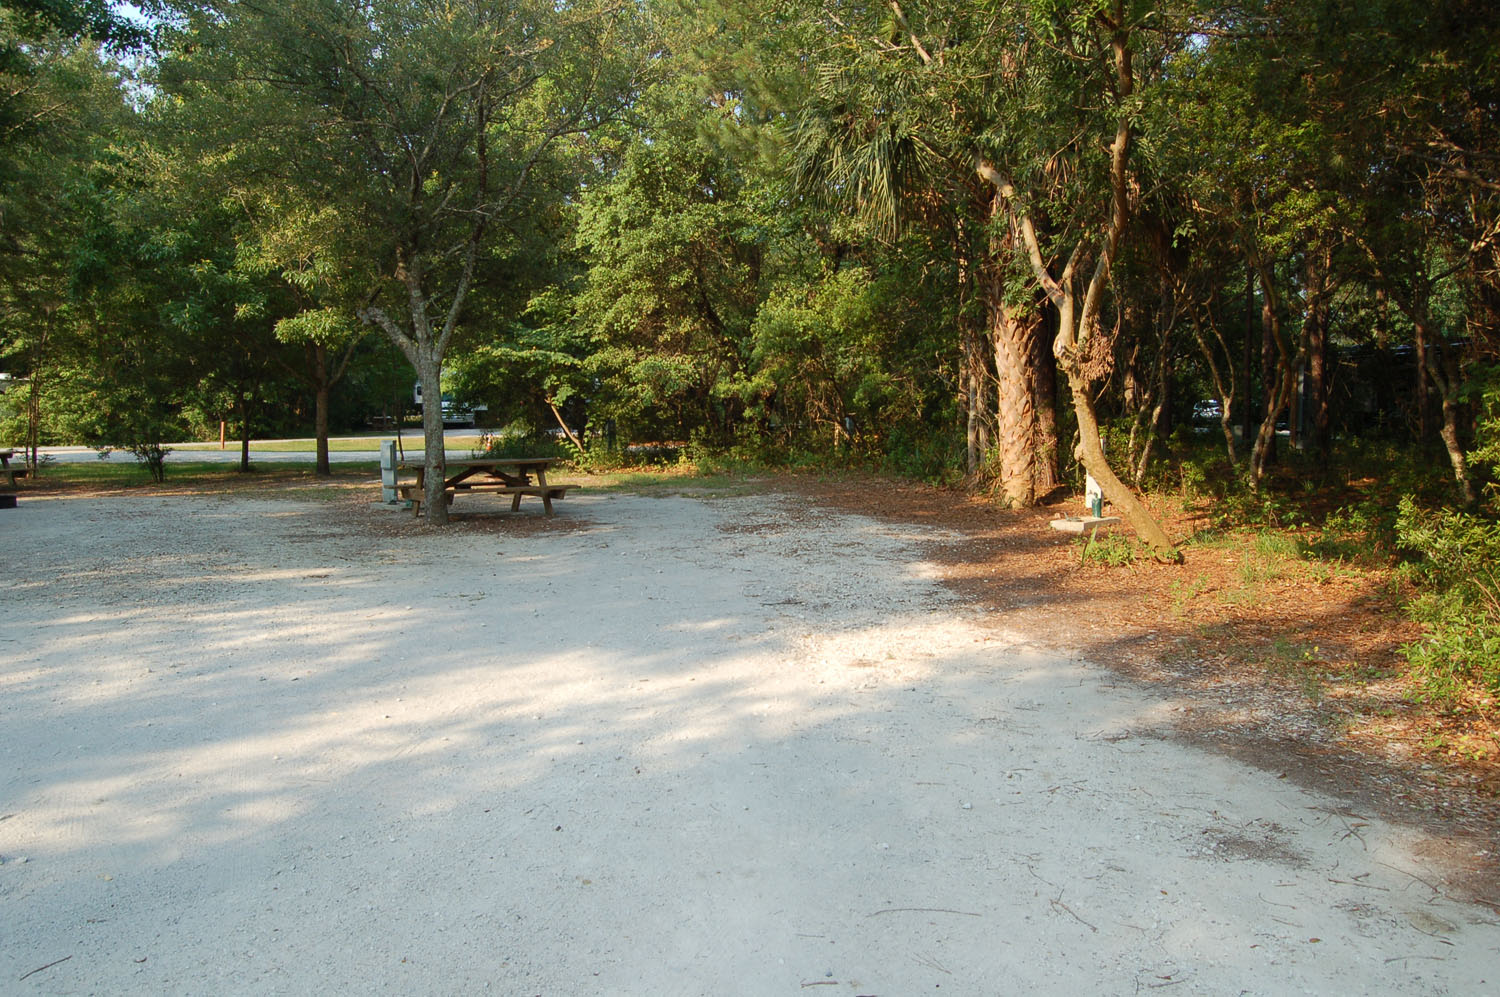 Image of campsite #72 at the Campground at James Island County Park